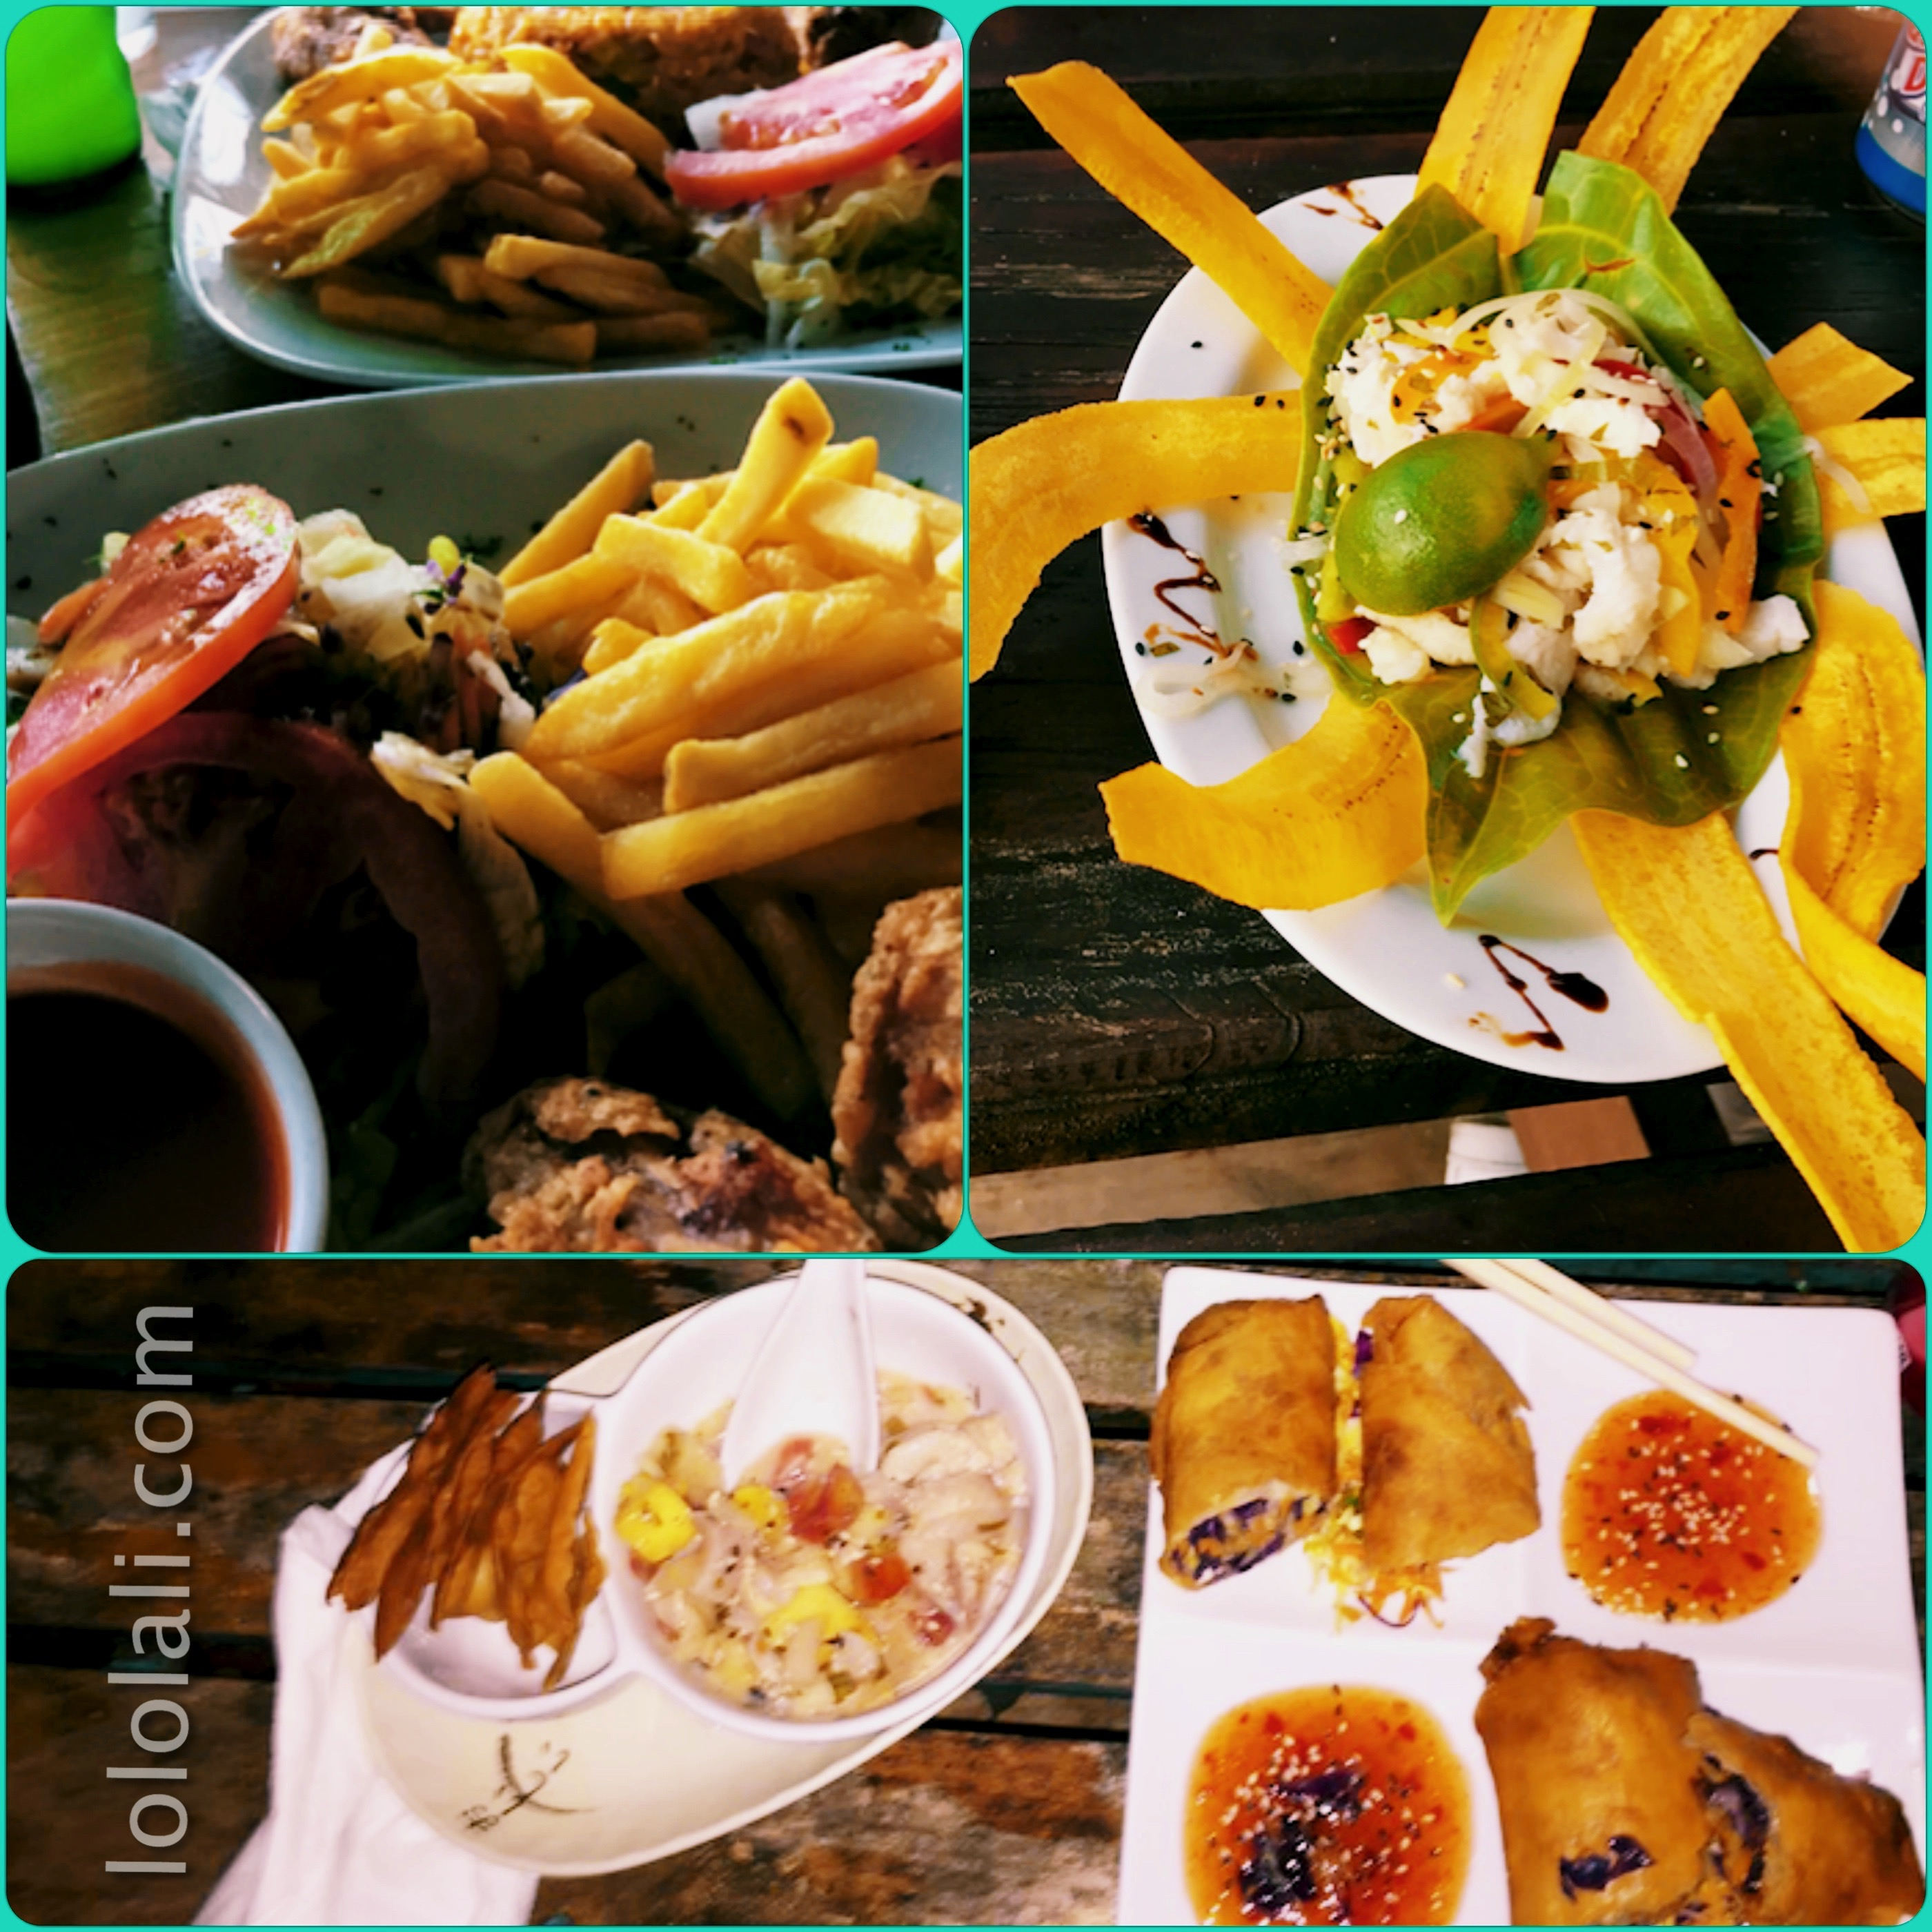 Meals from Bocas del Toro, Panama